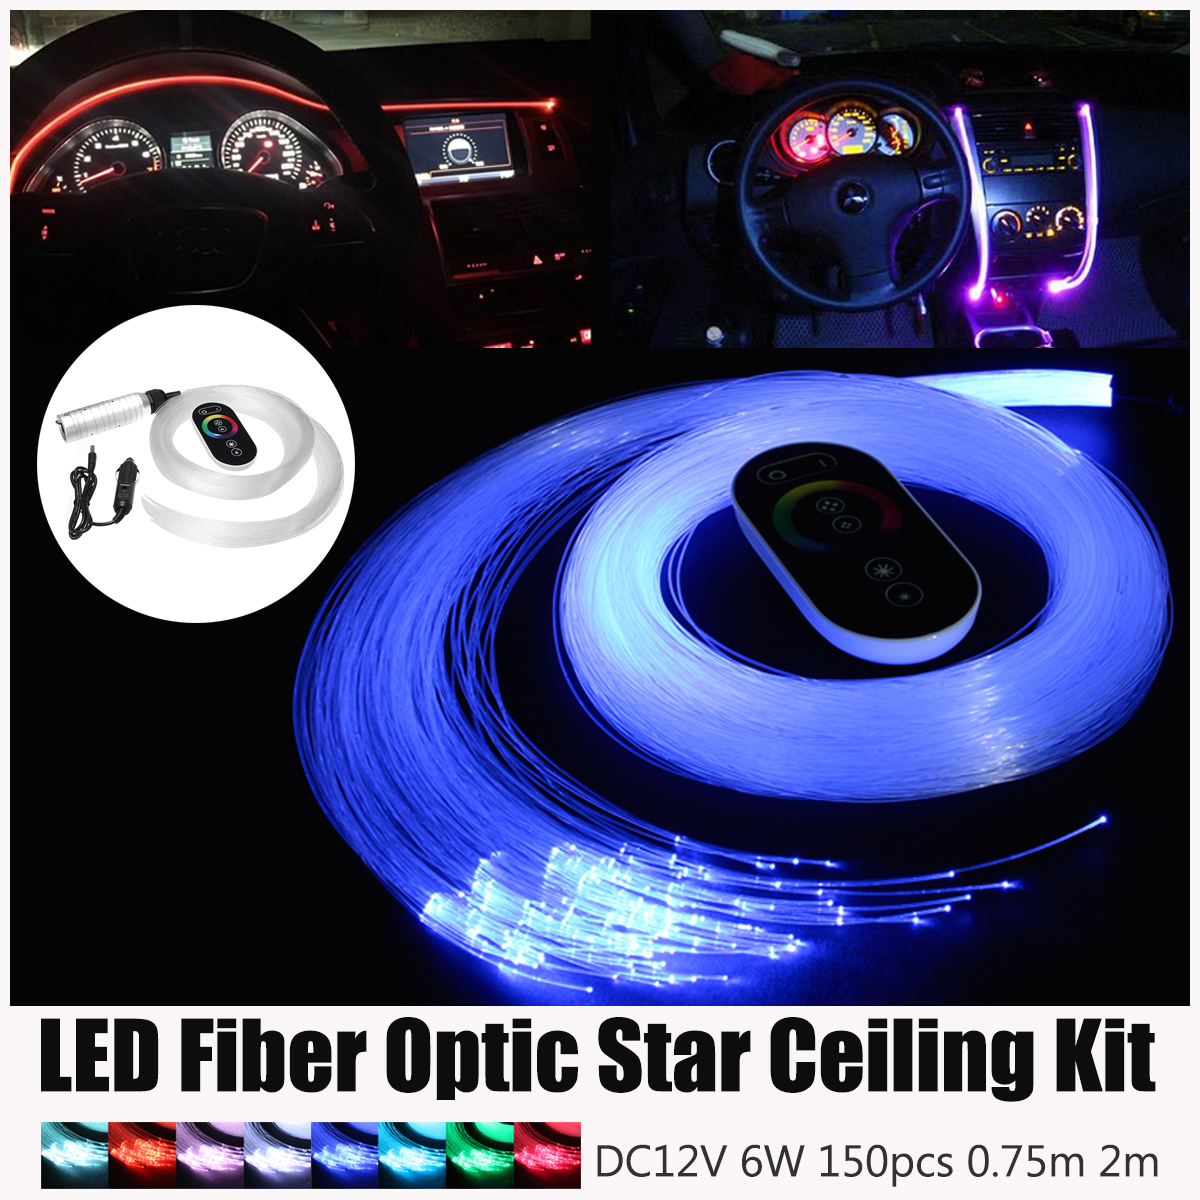 DC12V 6W 150Pcs RGB LED Fiber Optics Star Ceiling Light Engine Kit Car Power Adapter